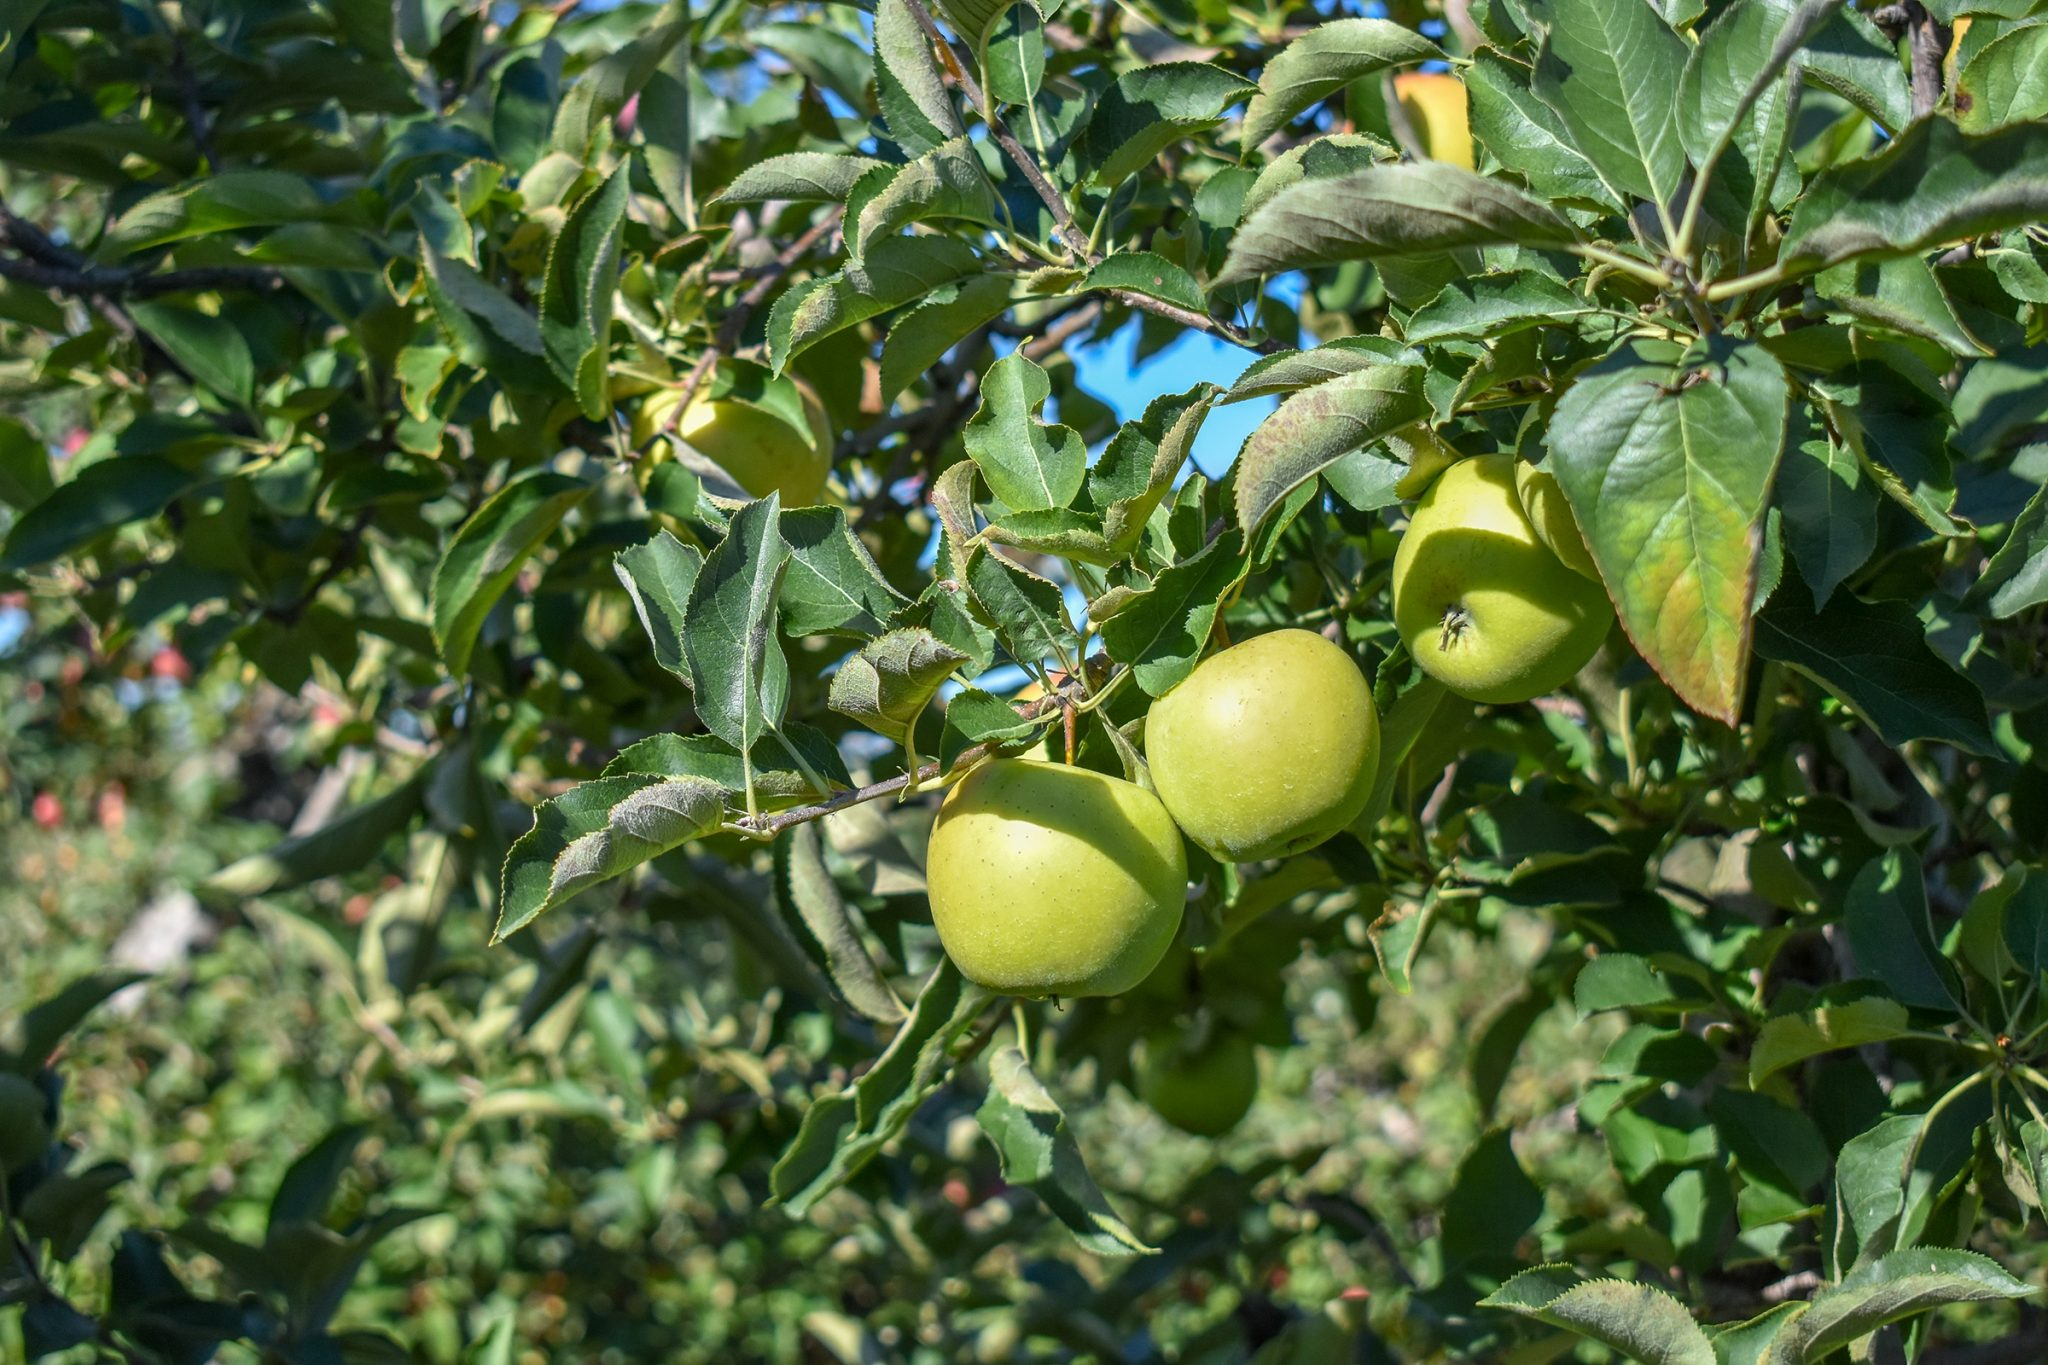 Mutsu/Crispin apples ready for the picking. Photo by Laura Thorne.